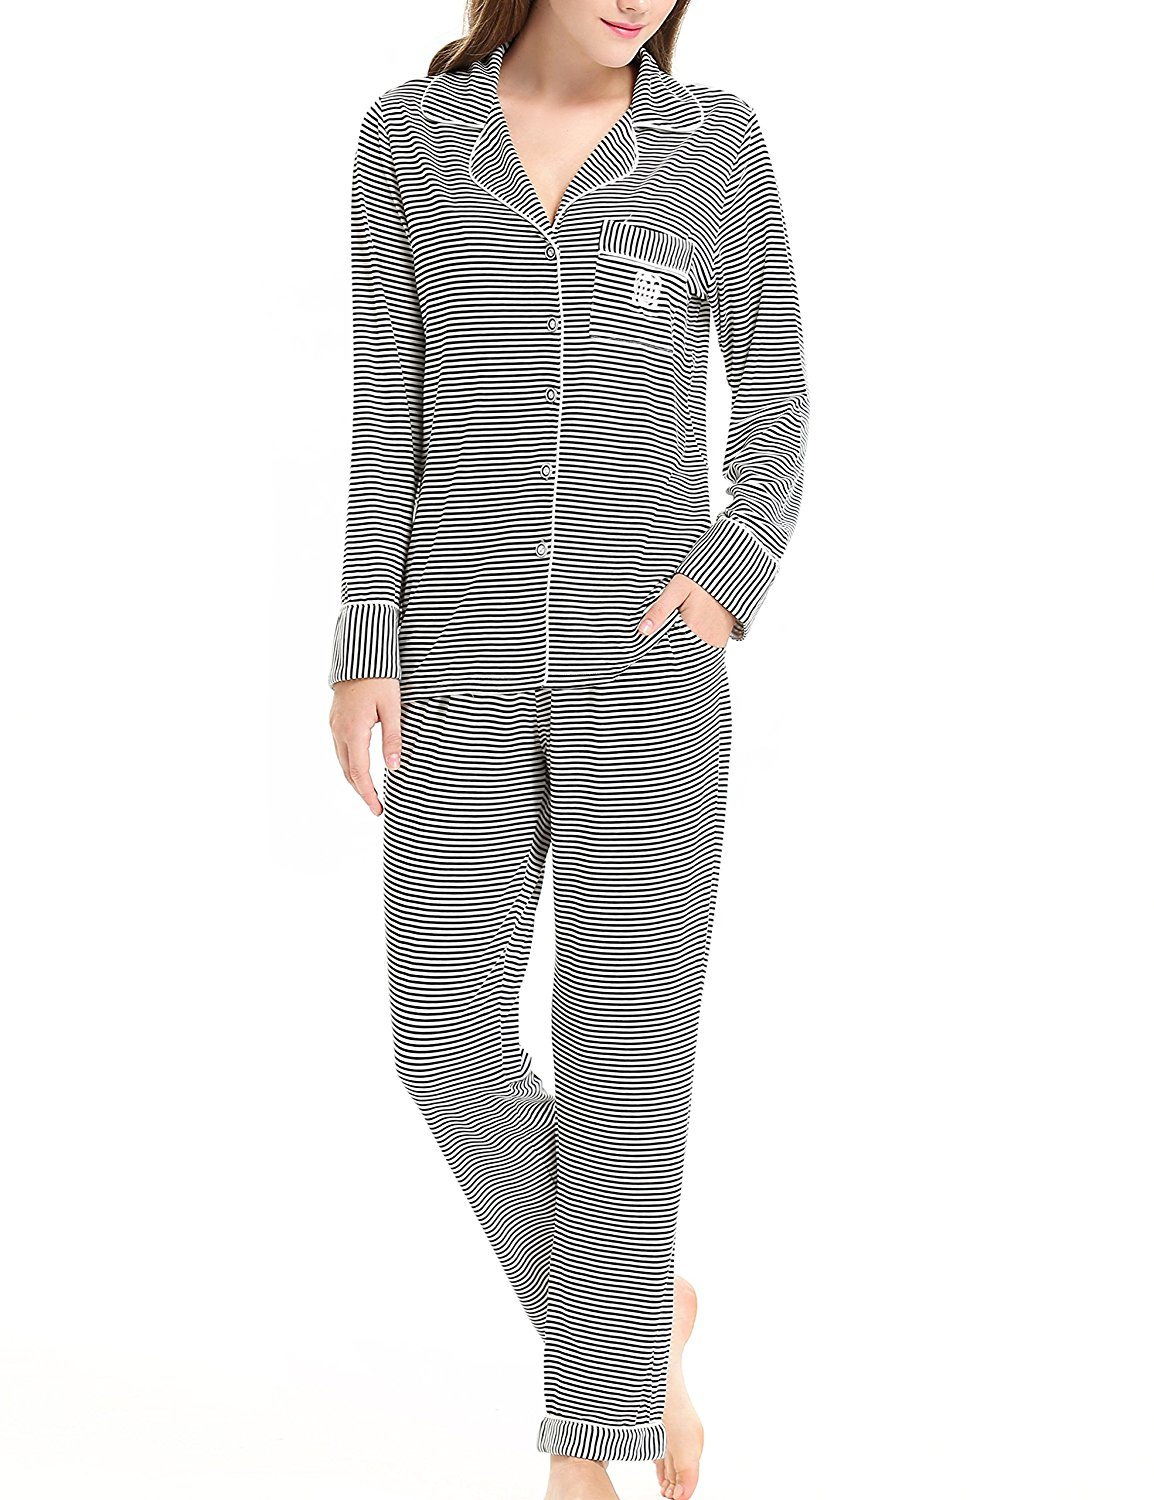 e6ac69b8cd1a Get Quotations · NORA TWIPS Pajamas For Women Sleep Shirt With Pants by  (XS-XL)